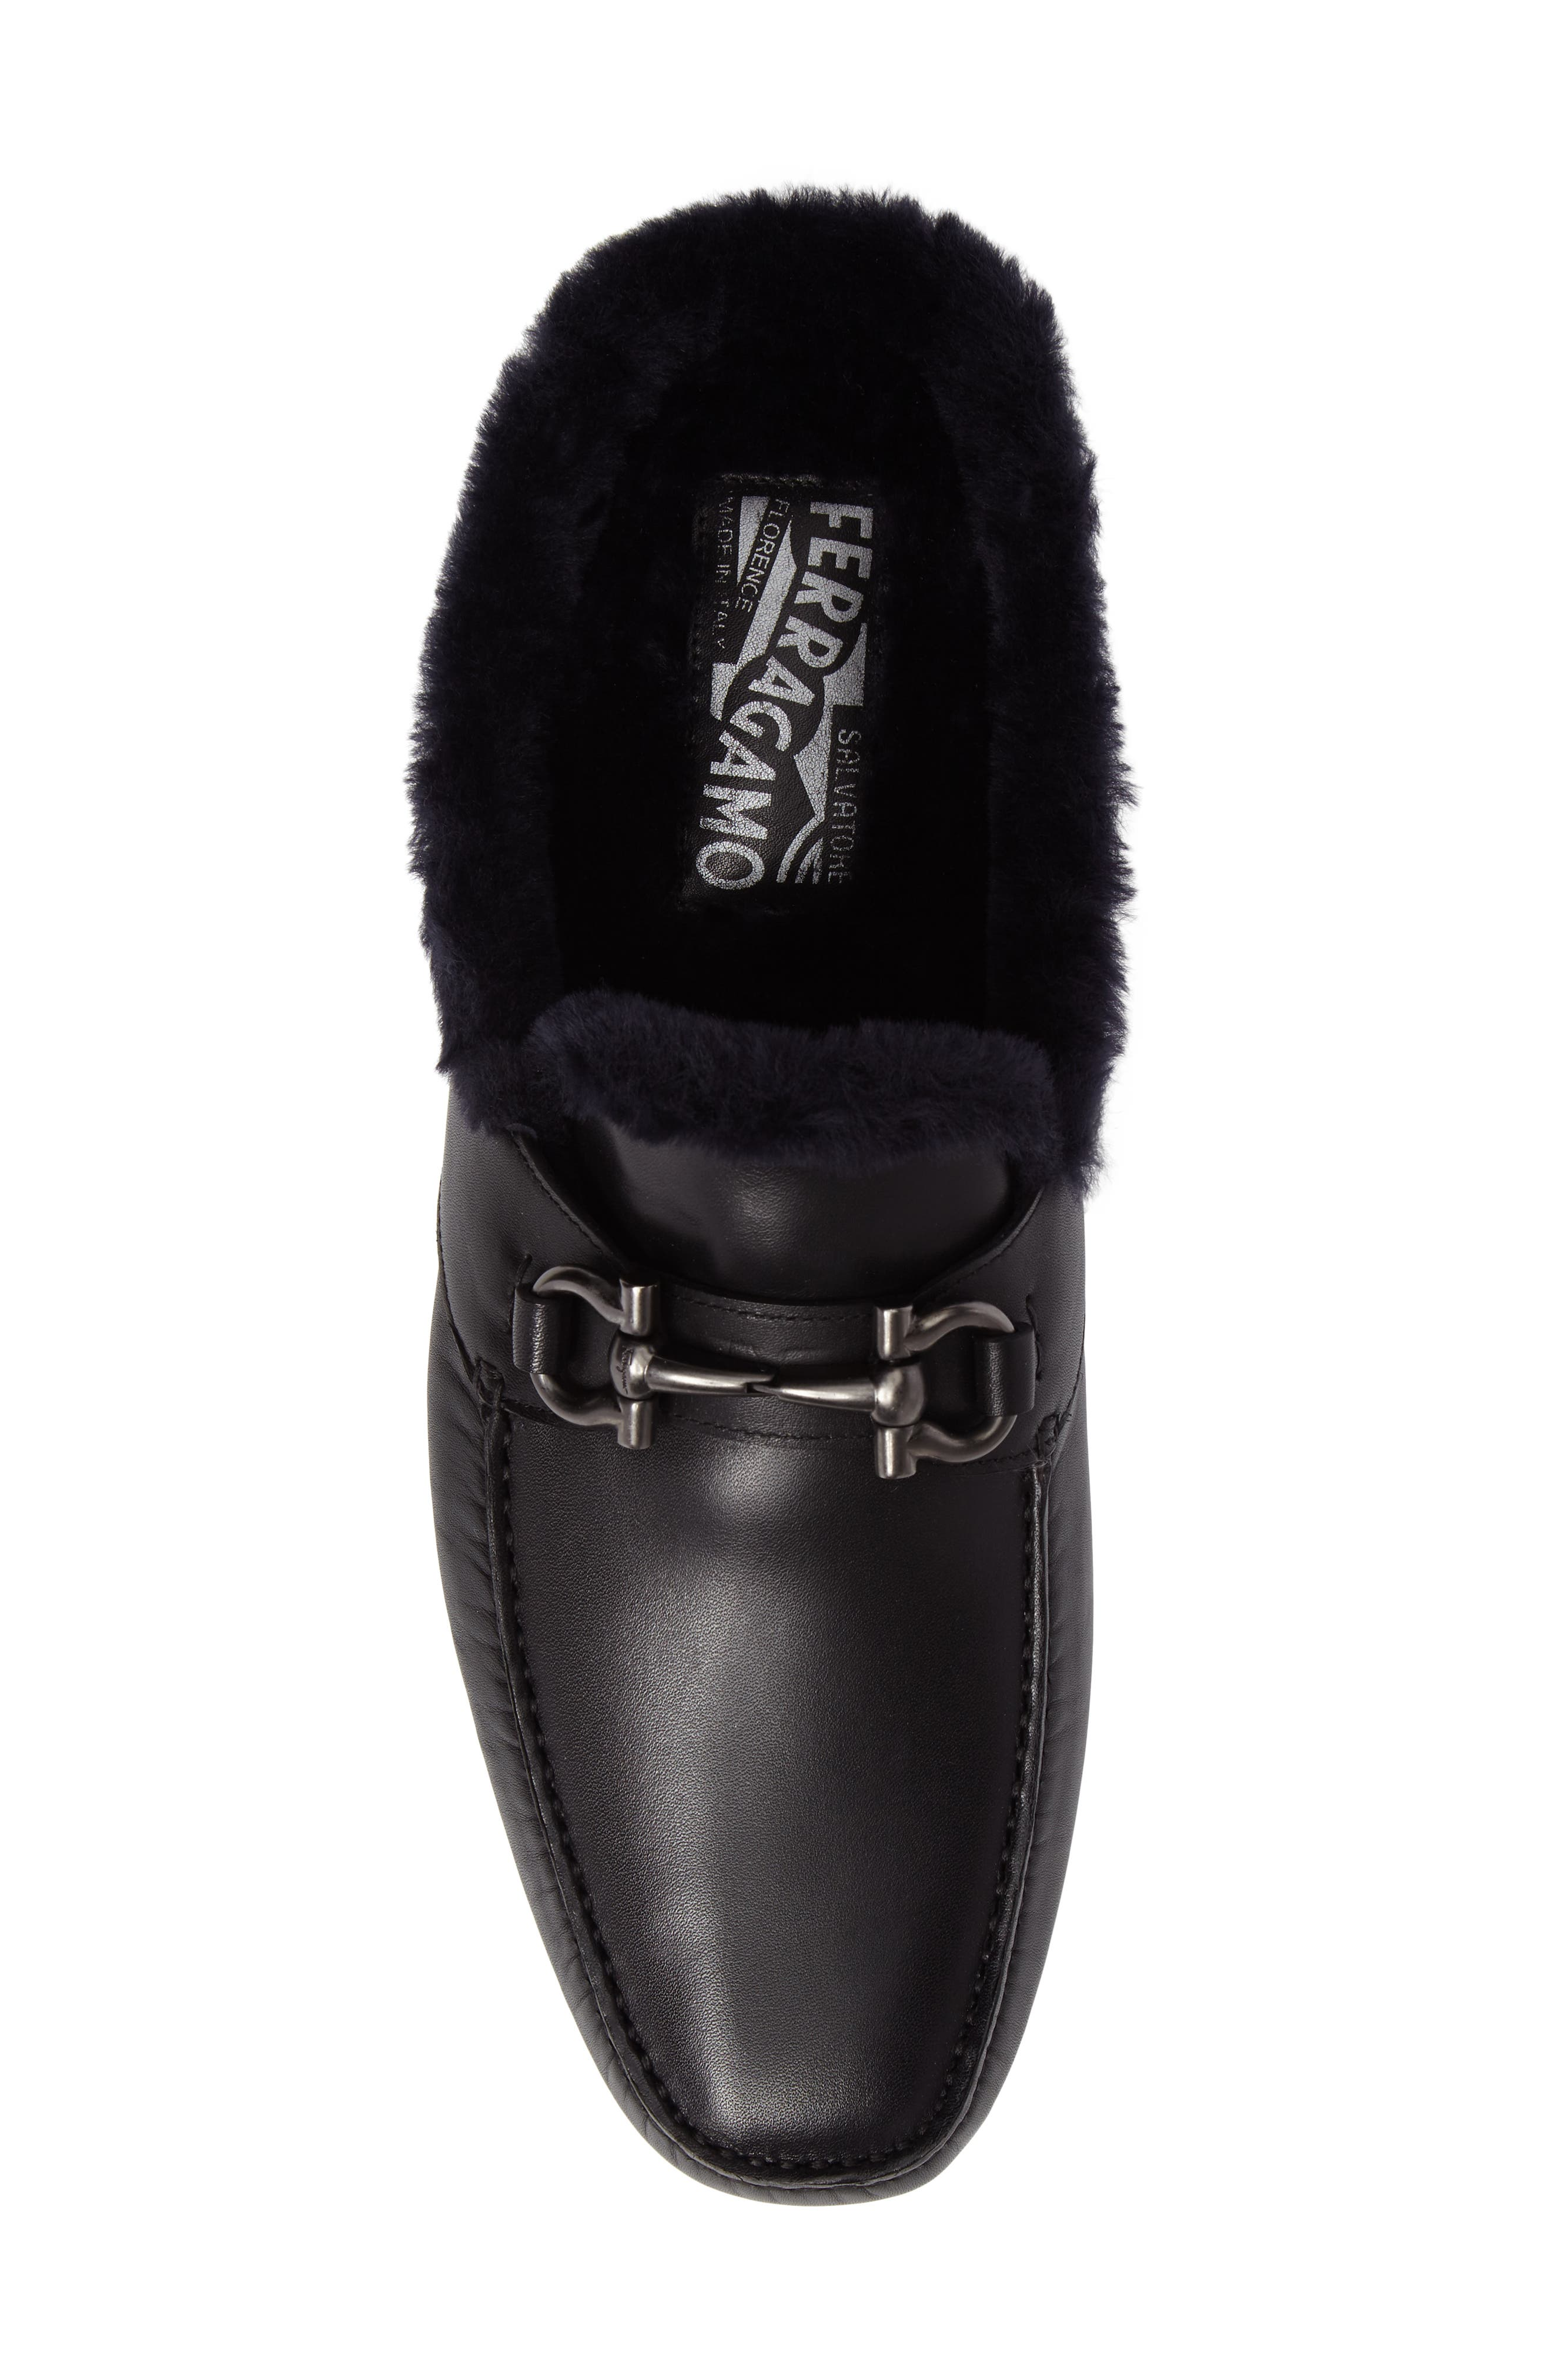 Driving Loafer with Genuine Shearling,                             Alternate thumbnail 5, color,                             001